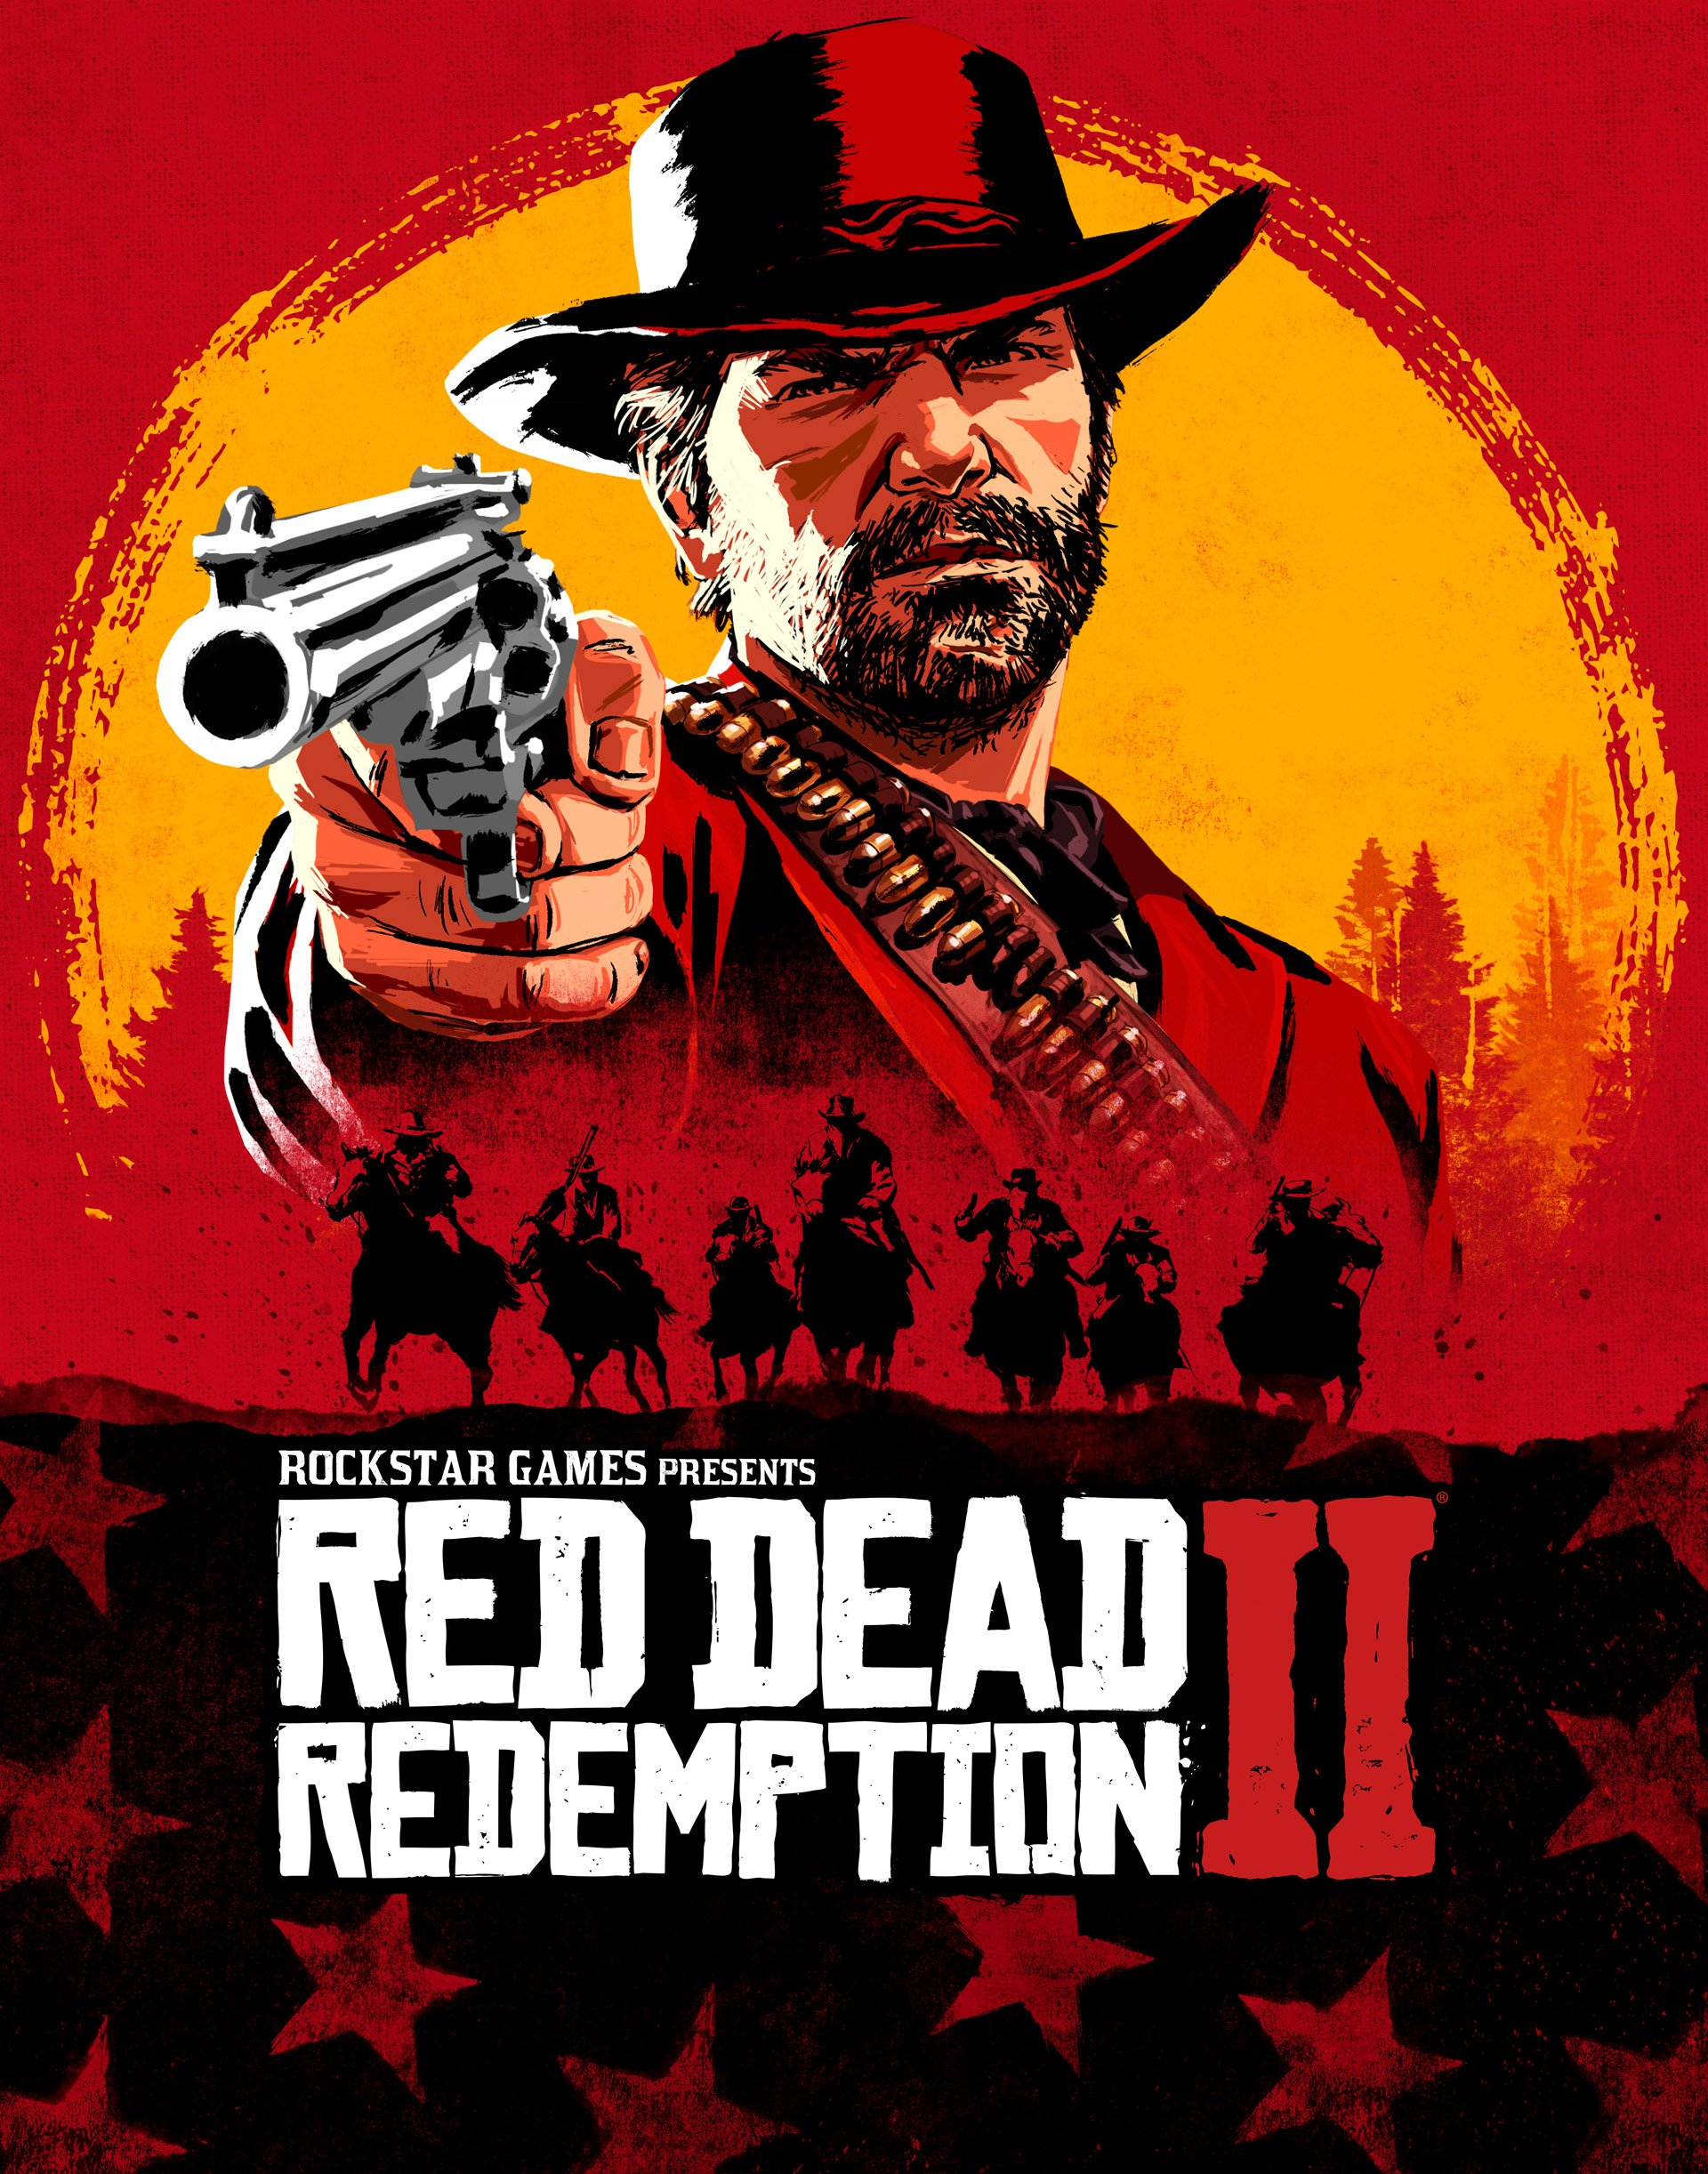 Red Dead Redemption 2: Ultimate Edition [v.1.0.1311.23] (2020) RePack от R.G. Механики (2019)